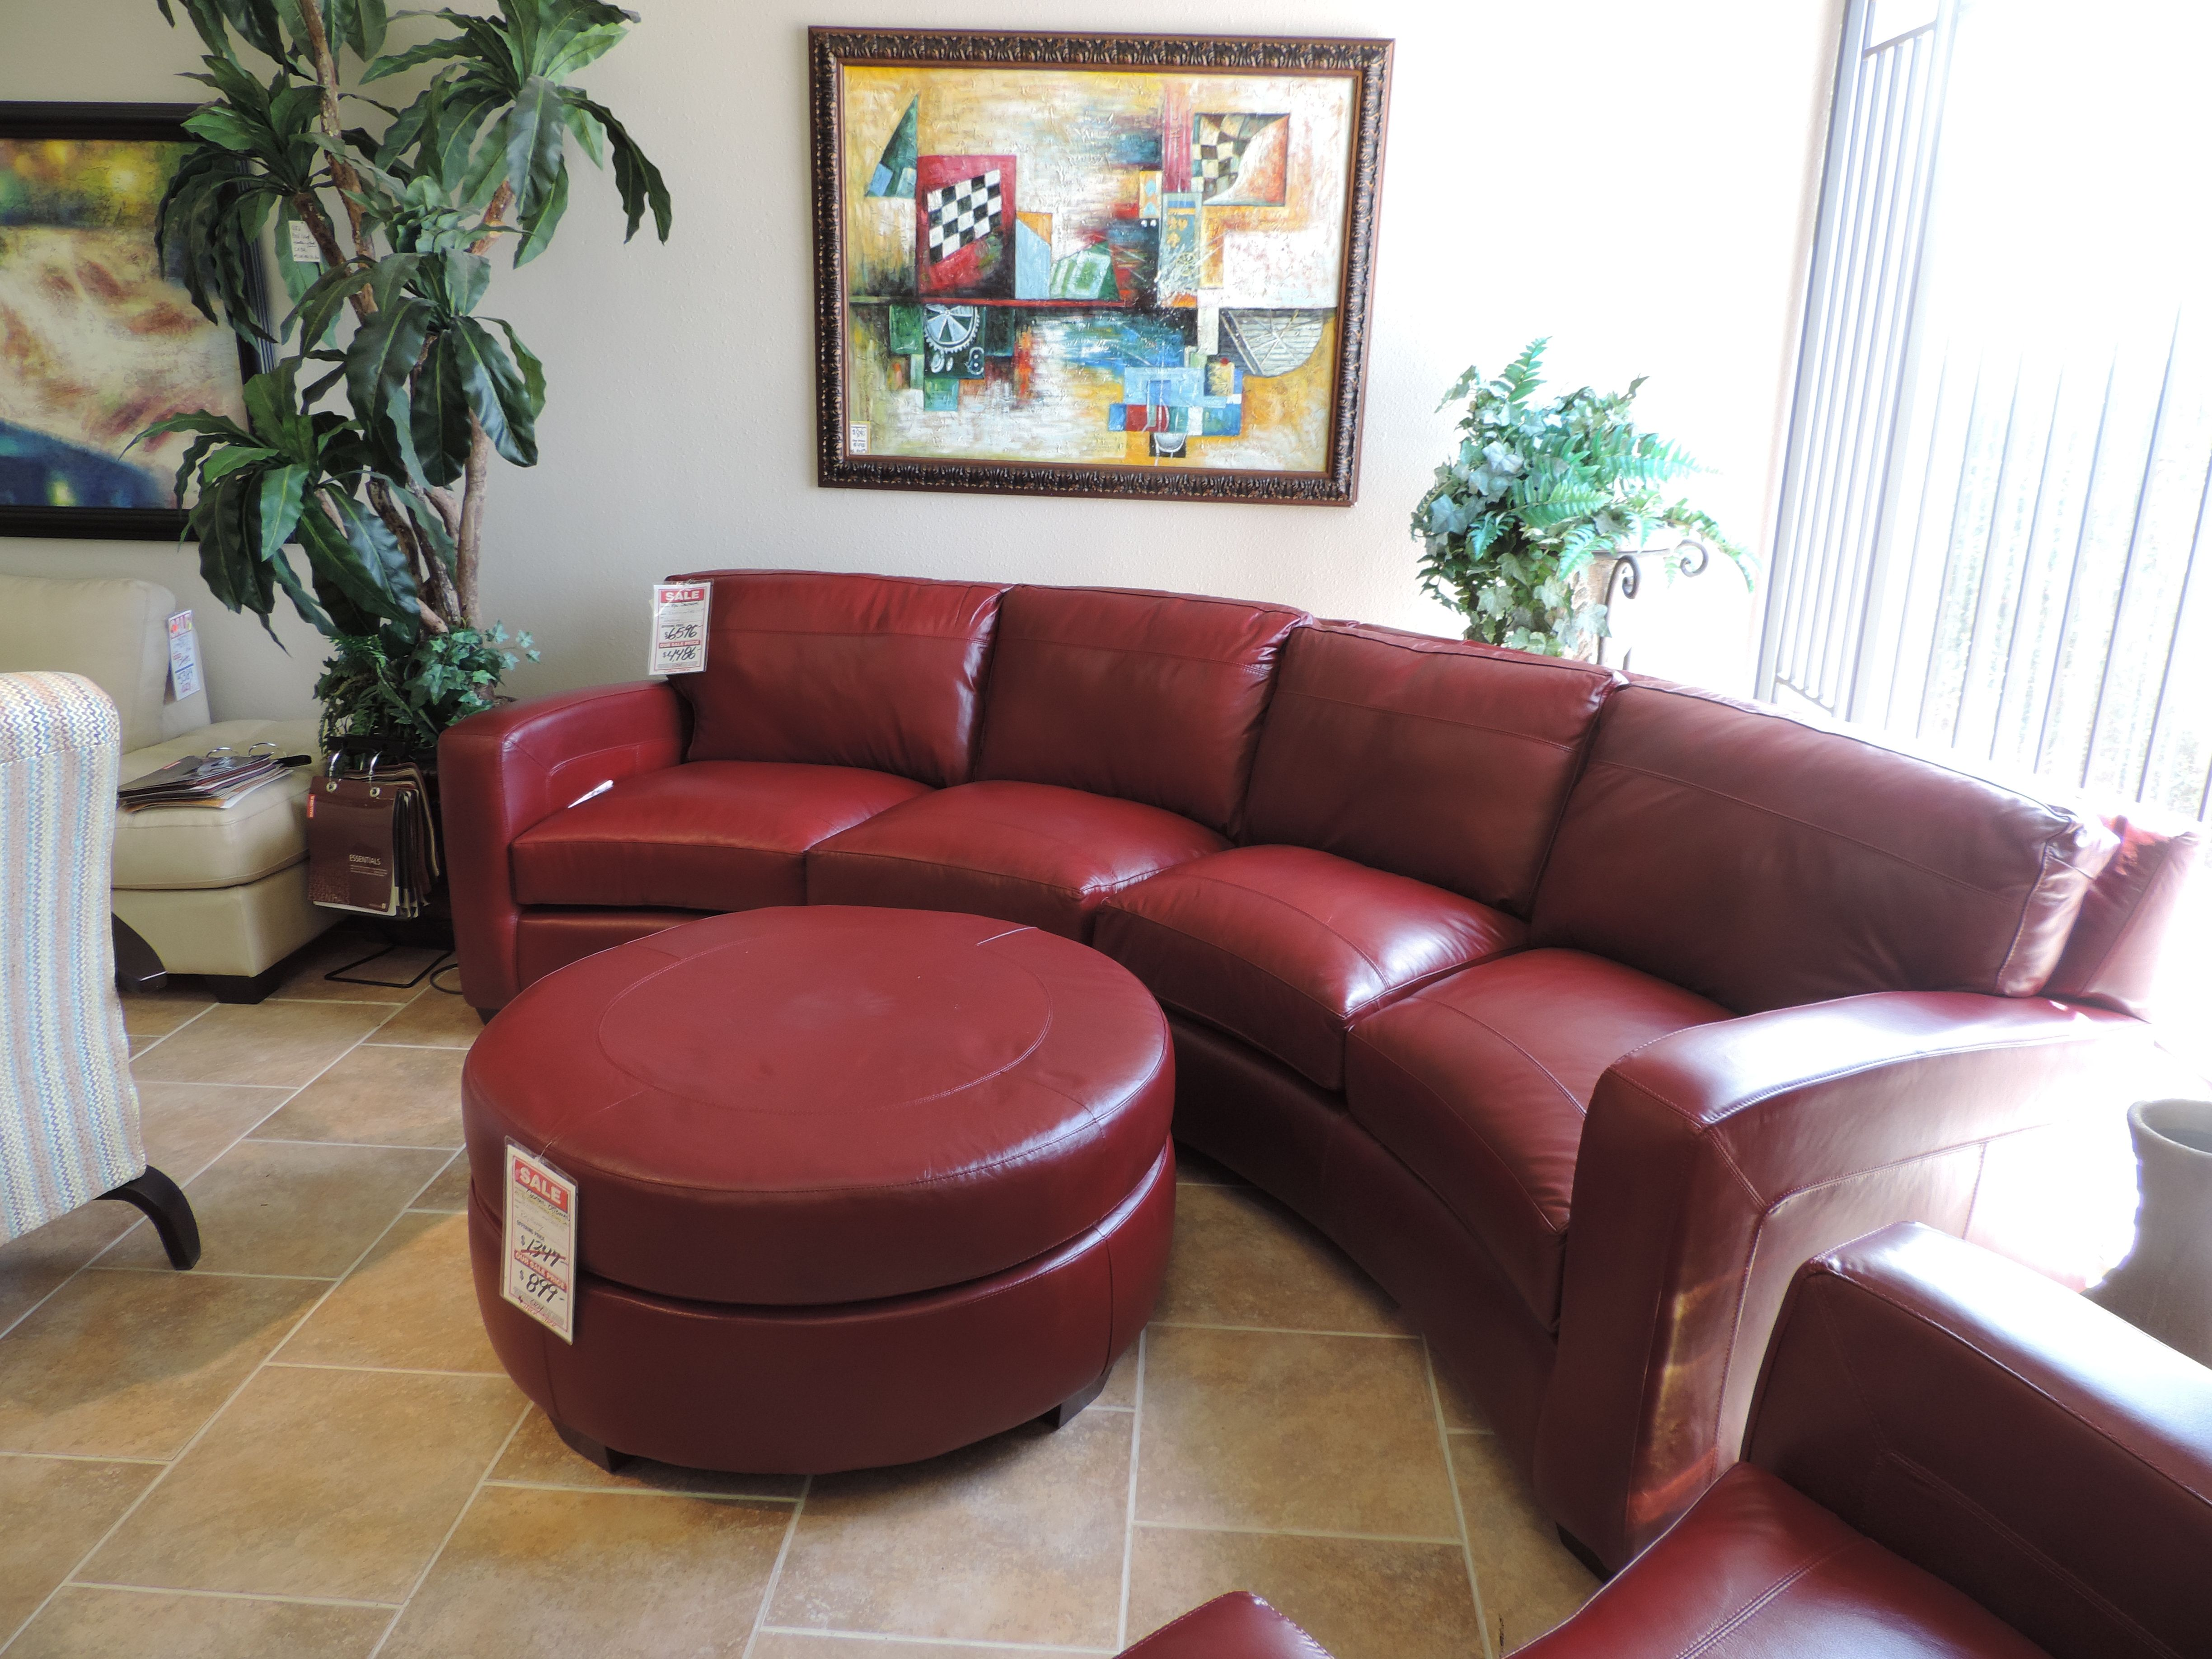 Olx Divani Divani Red Leather Sectional Sofa With Ottoman Baci Living Room